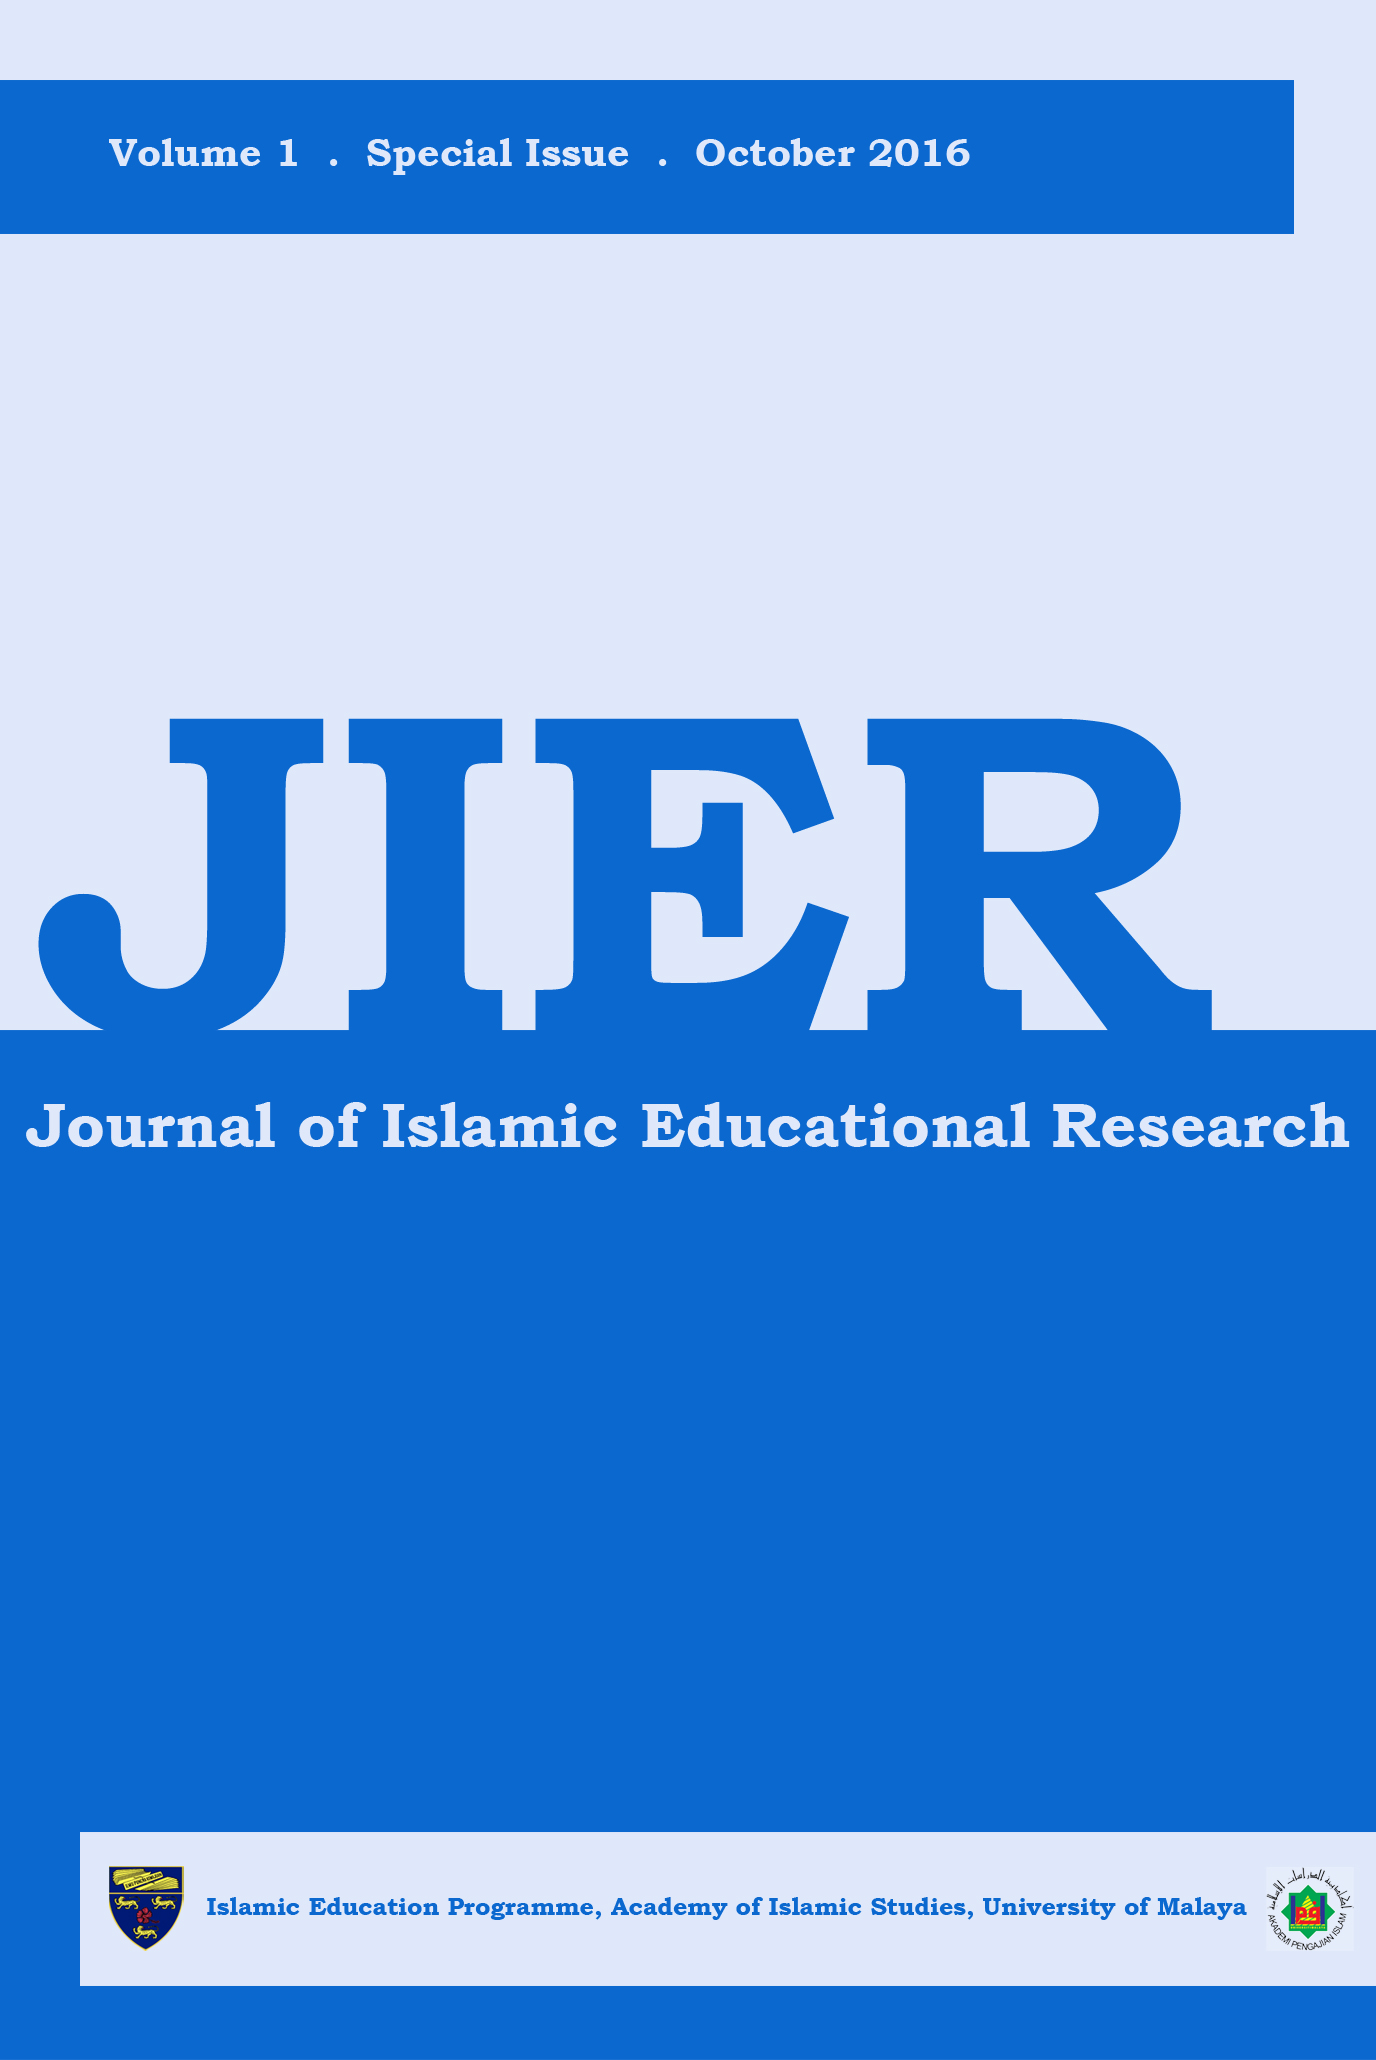 Journal of Islamic Educational Research (JIER)